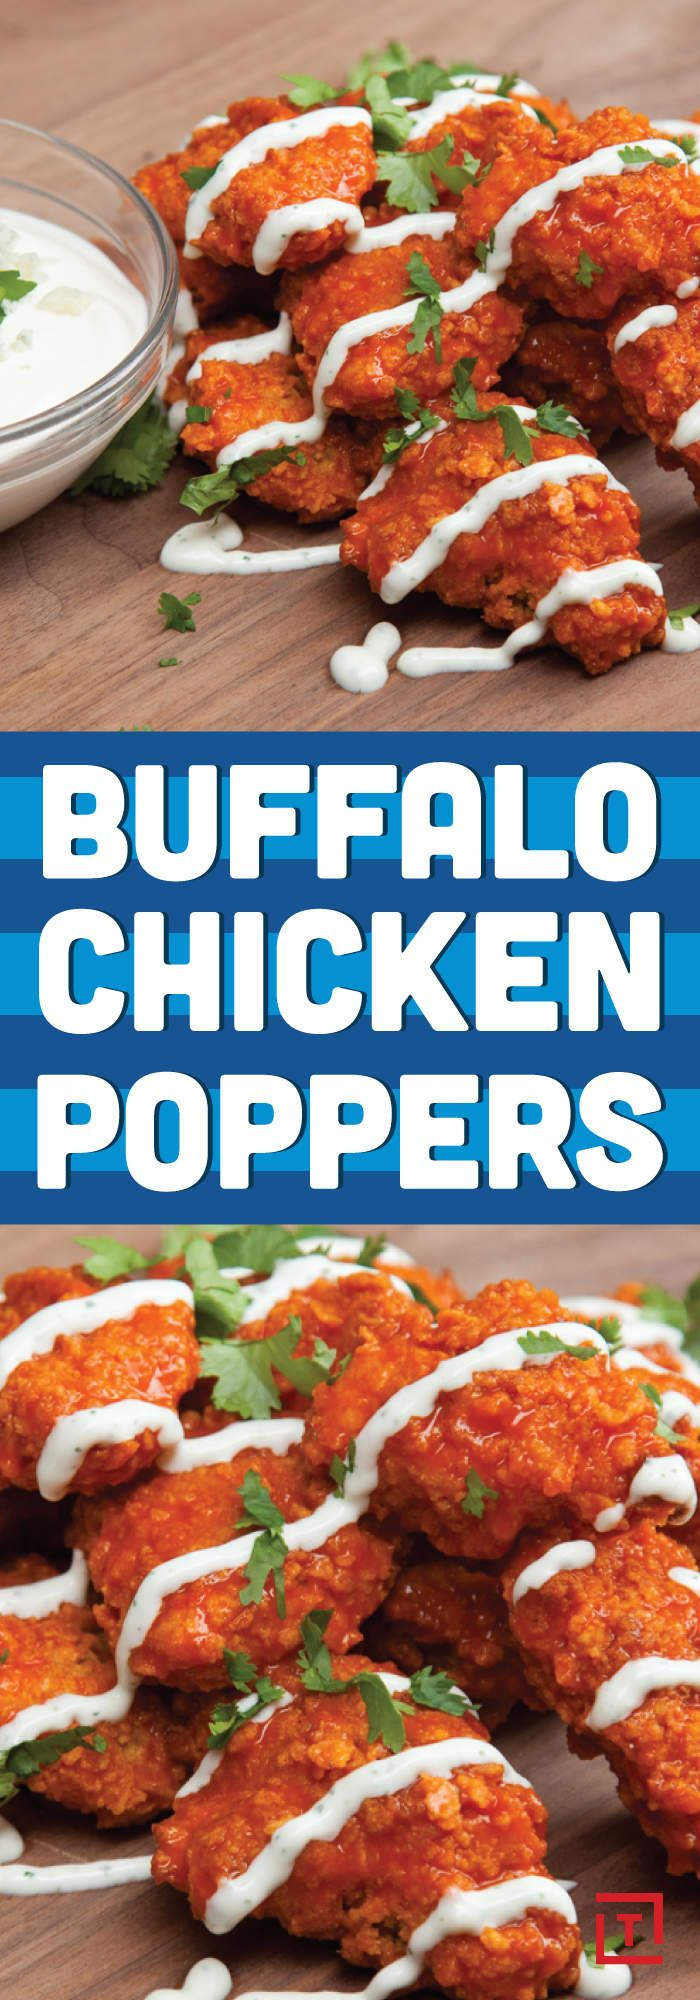 Here's How To Make Awesome Buffalo Chicken Poppers